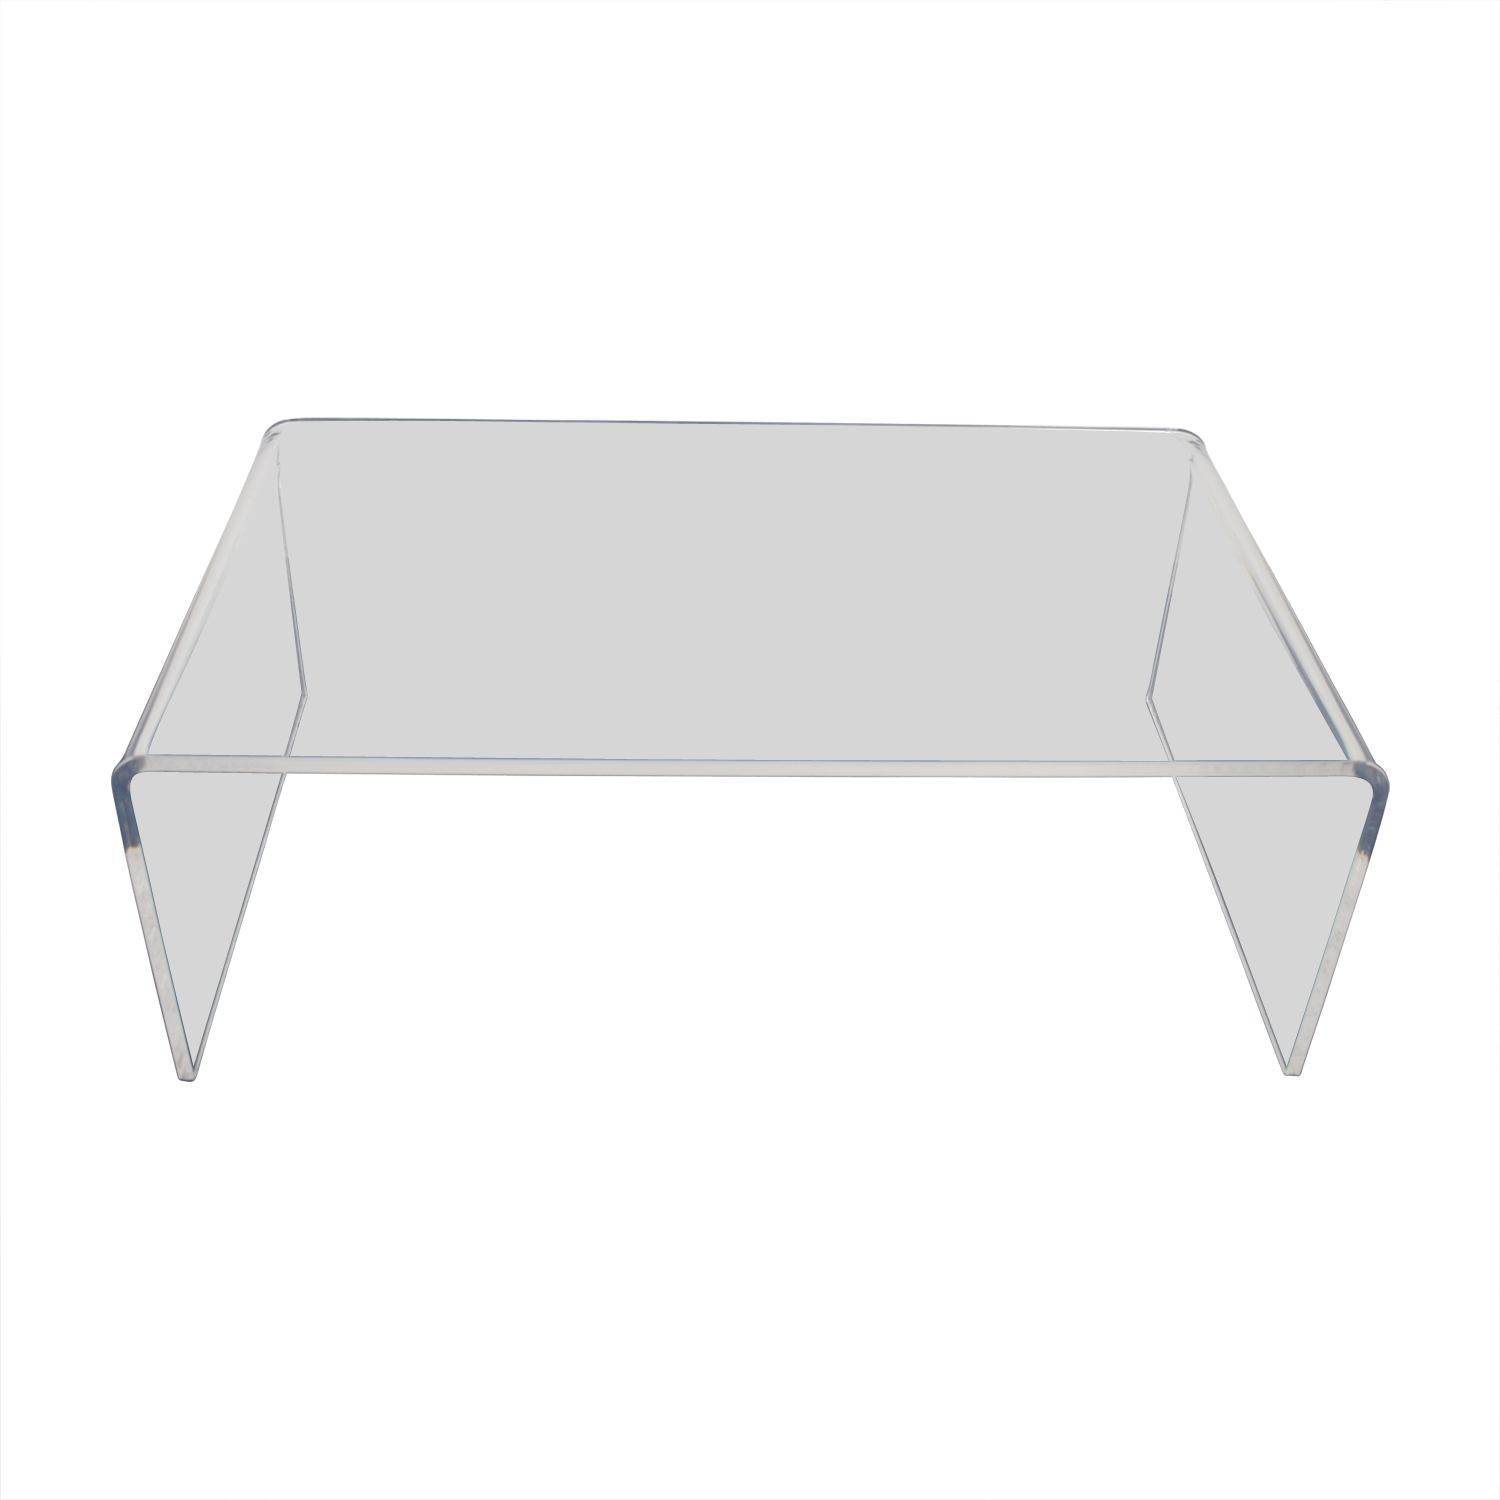 Fine 60 Off Cb2 Cb2 Peekaboo Acrylic Coffee Table Tables Unemploymentrelief Wooden Chair Designs For Living Room Unemploymentrelieforg